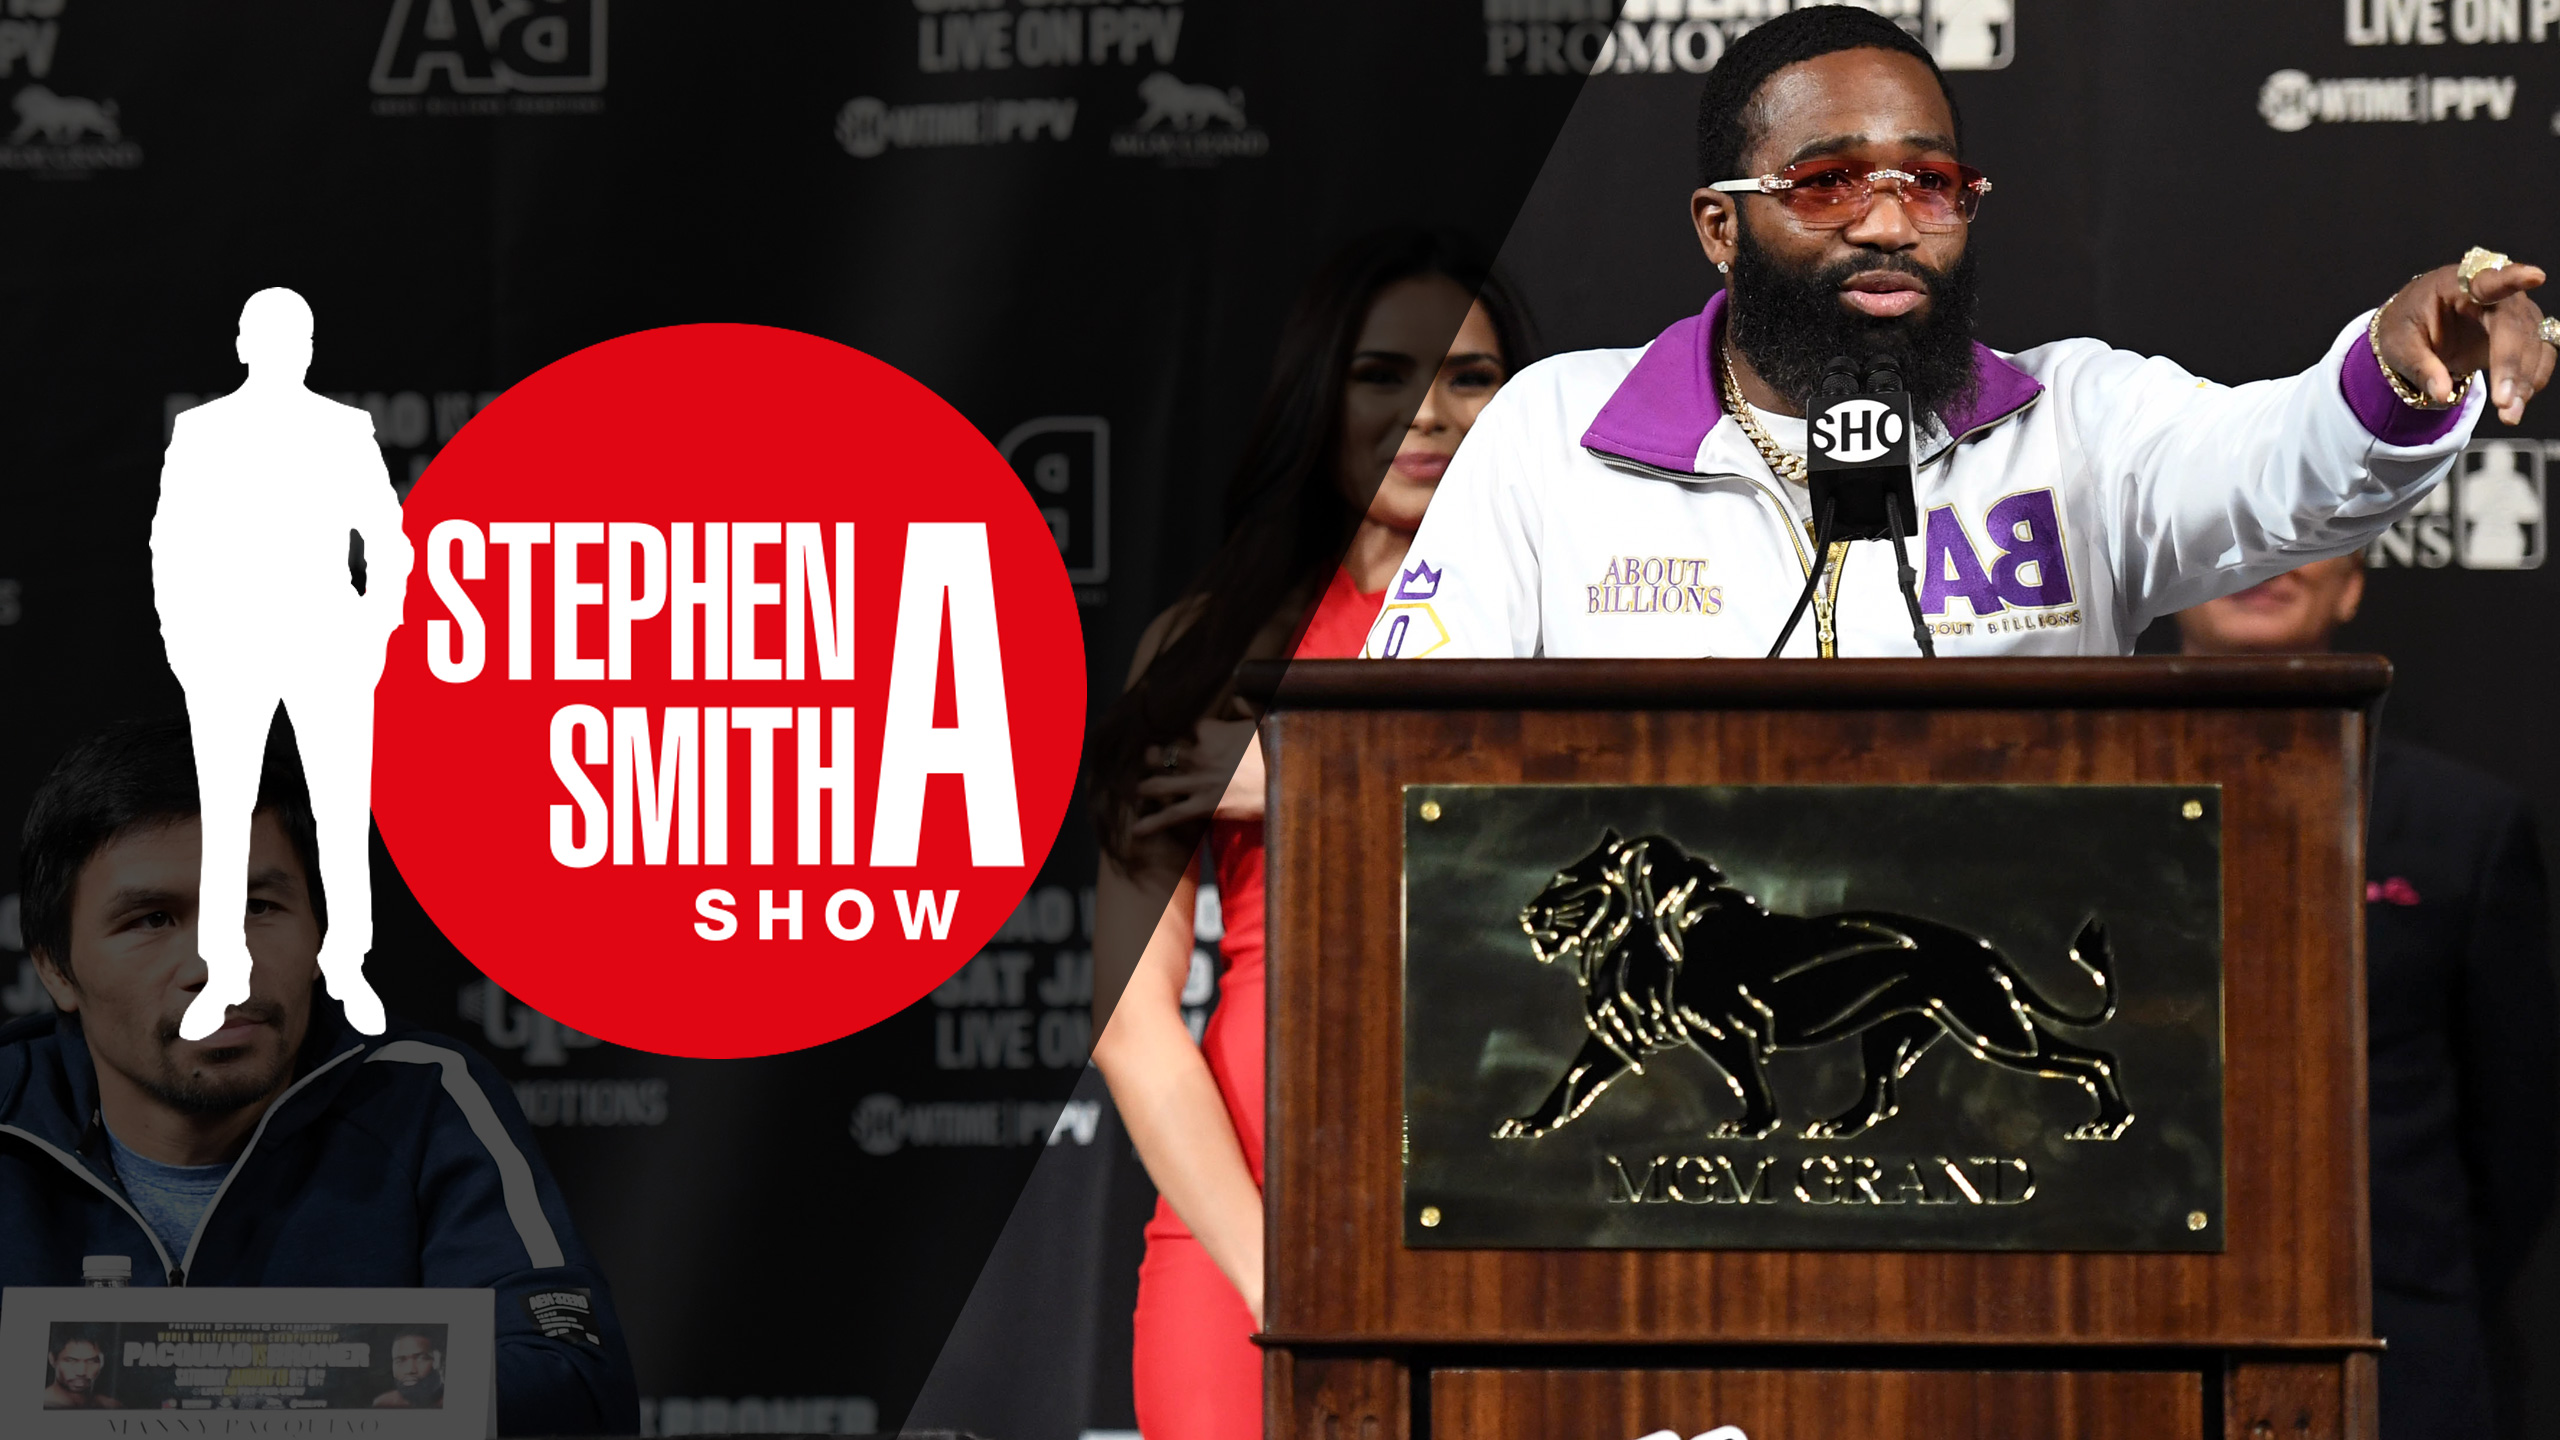 Thu, 1/17 - The Stephen A. Smith Show